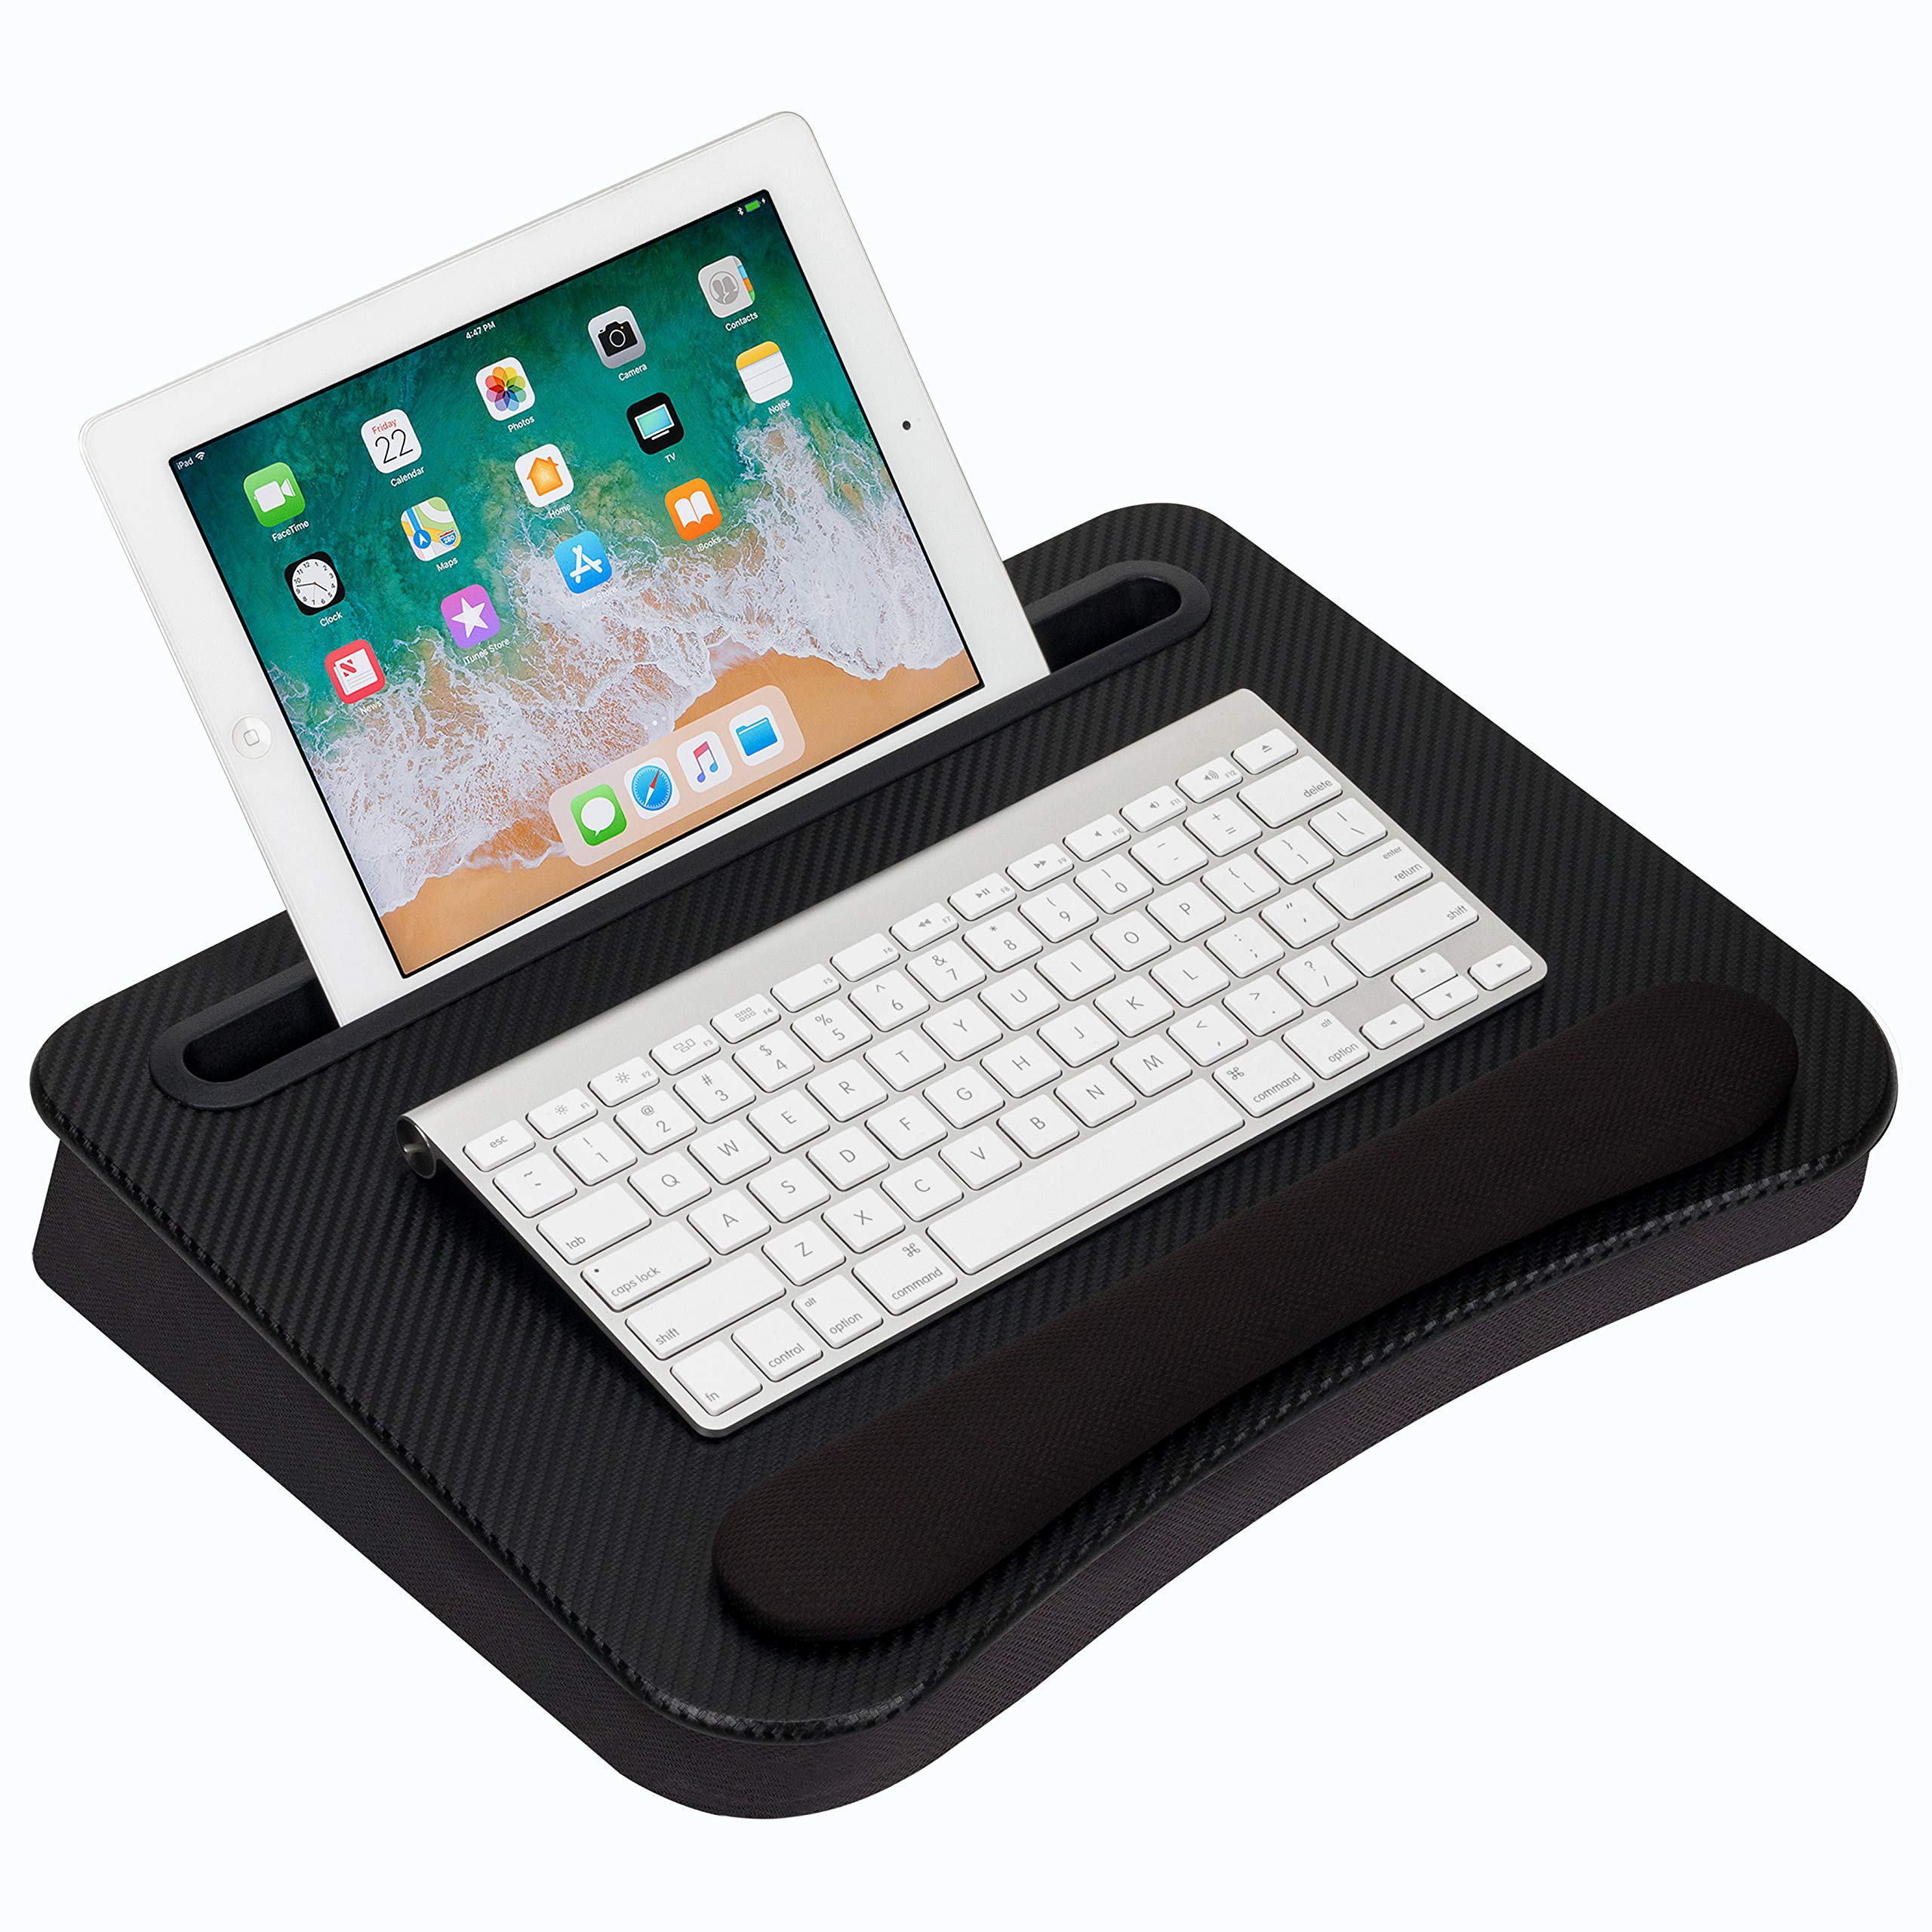 LapGear Smart-e Memory Foam Lap Desk - Black Carbon - Fits up to 15.6 Inch laptops and Most Tablet Devices - Style No. 91338